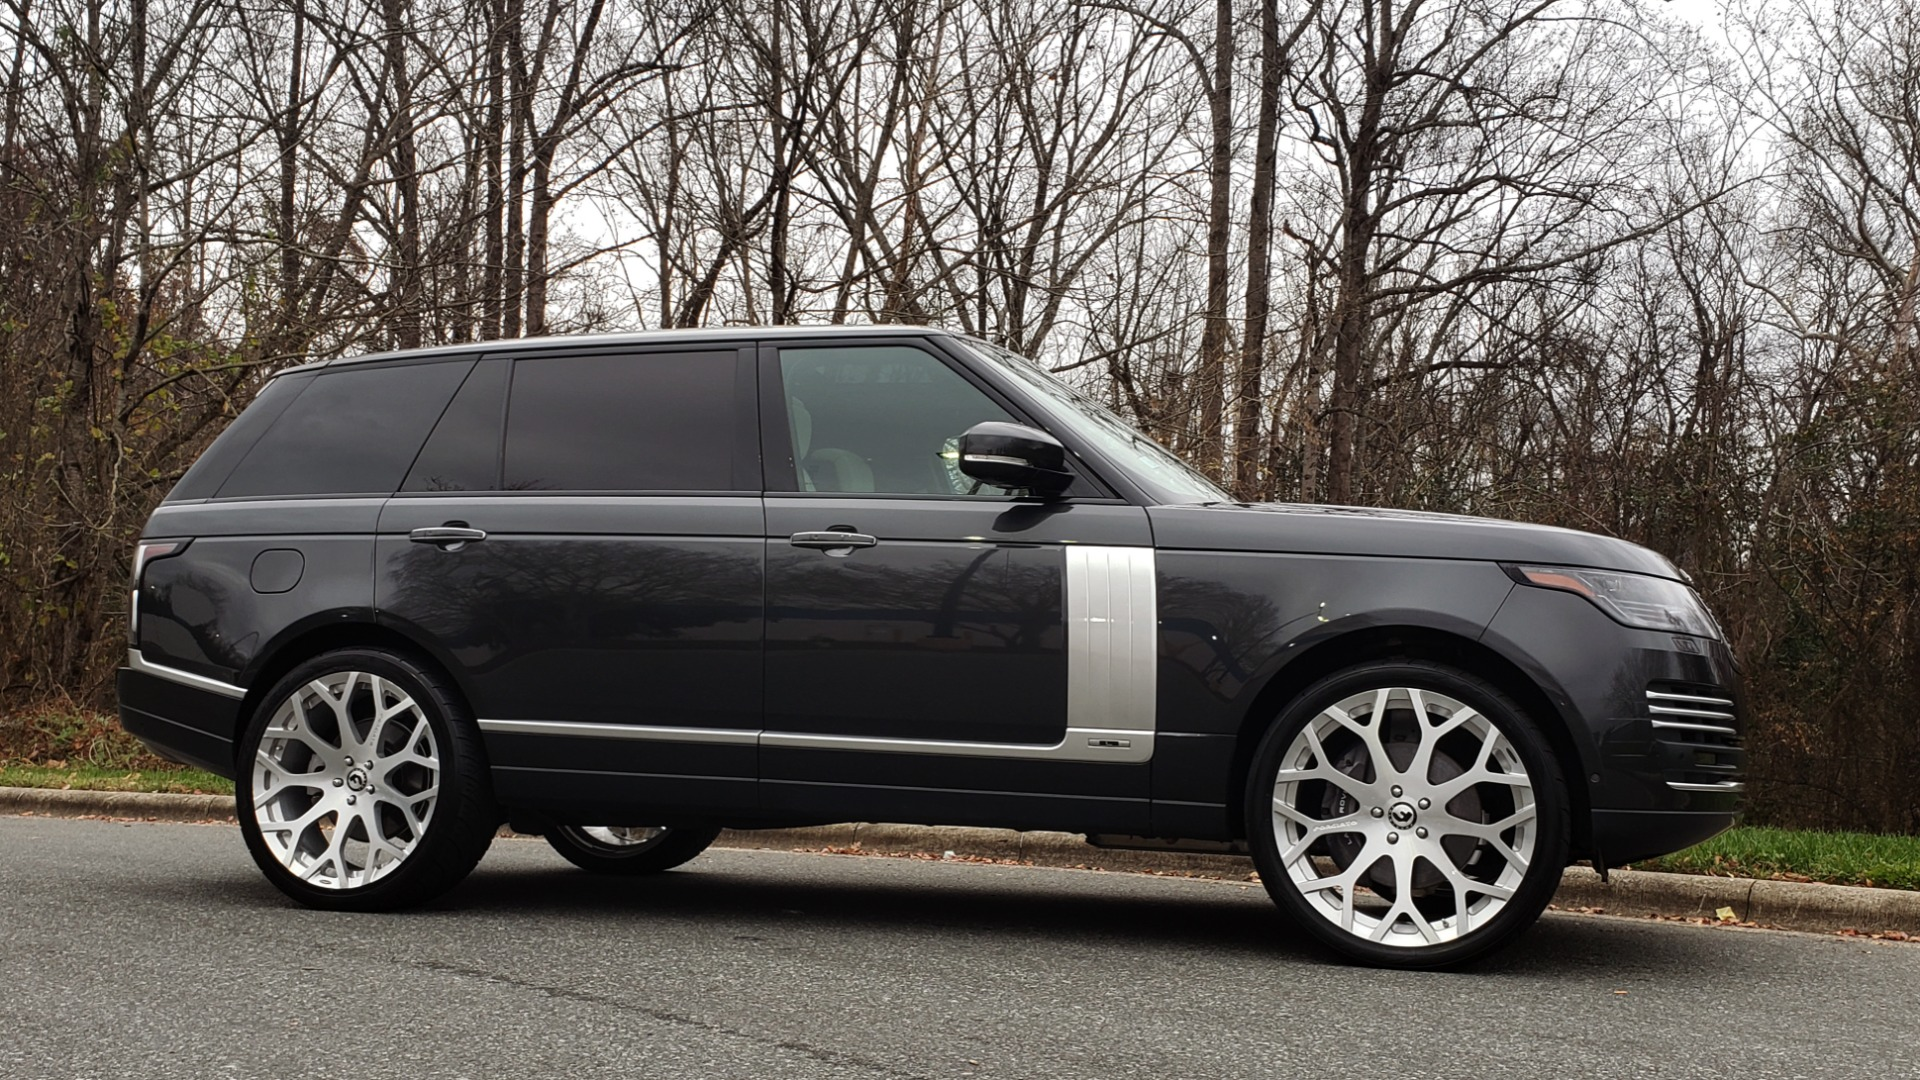 Used 2018 Land Rover RANGE ROVER AUTOBIOGRAPHY SC V8 / LONG / NAV / PANOROOF / ENT SYS / REARVIEW for sale $117,999 at Formula Imports in Charlotte NC 28227 6